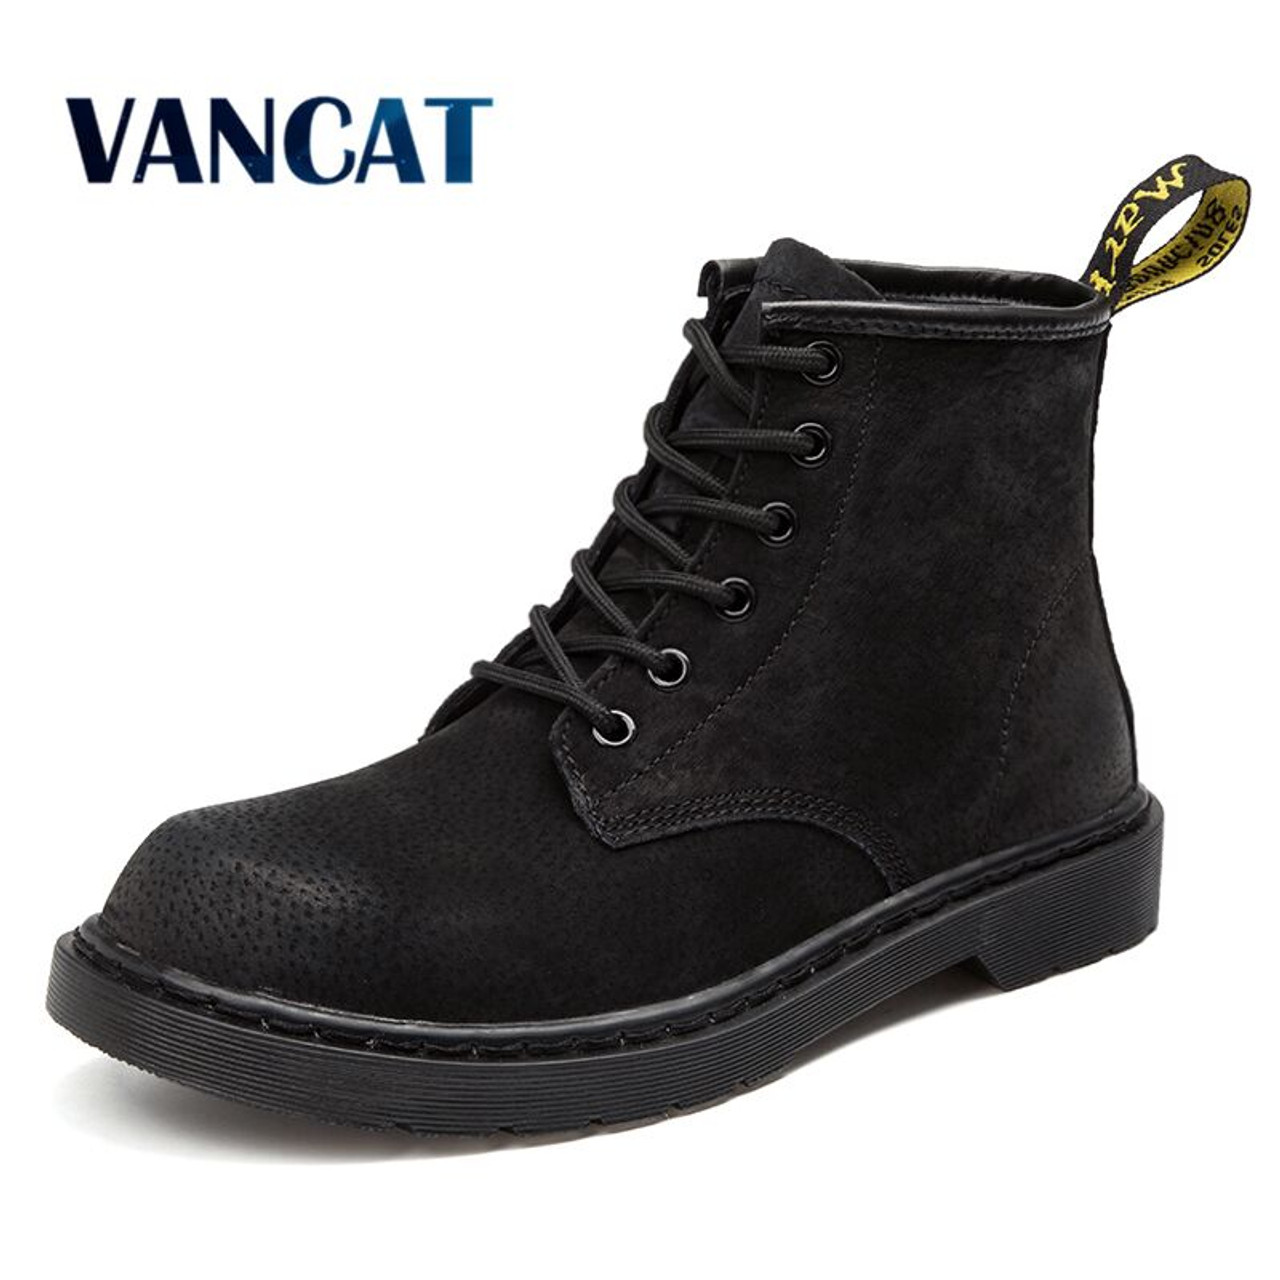 1063c73f2c5 Vancat Brand Warm Men s Autumn Winter Genuine Leather Men Waterproof Snow  Boots Work Safety Ankle Boots ...